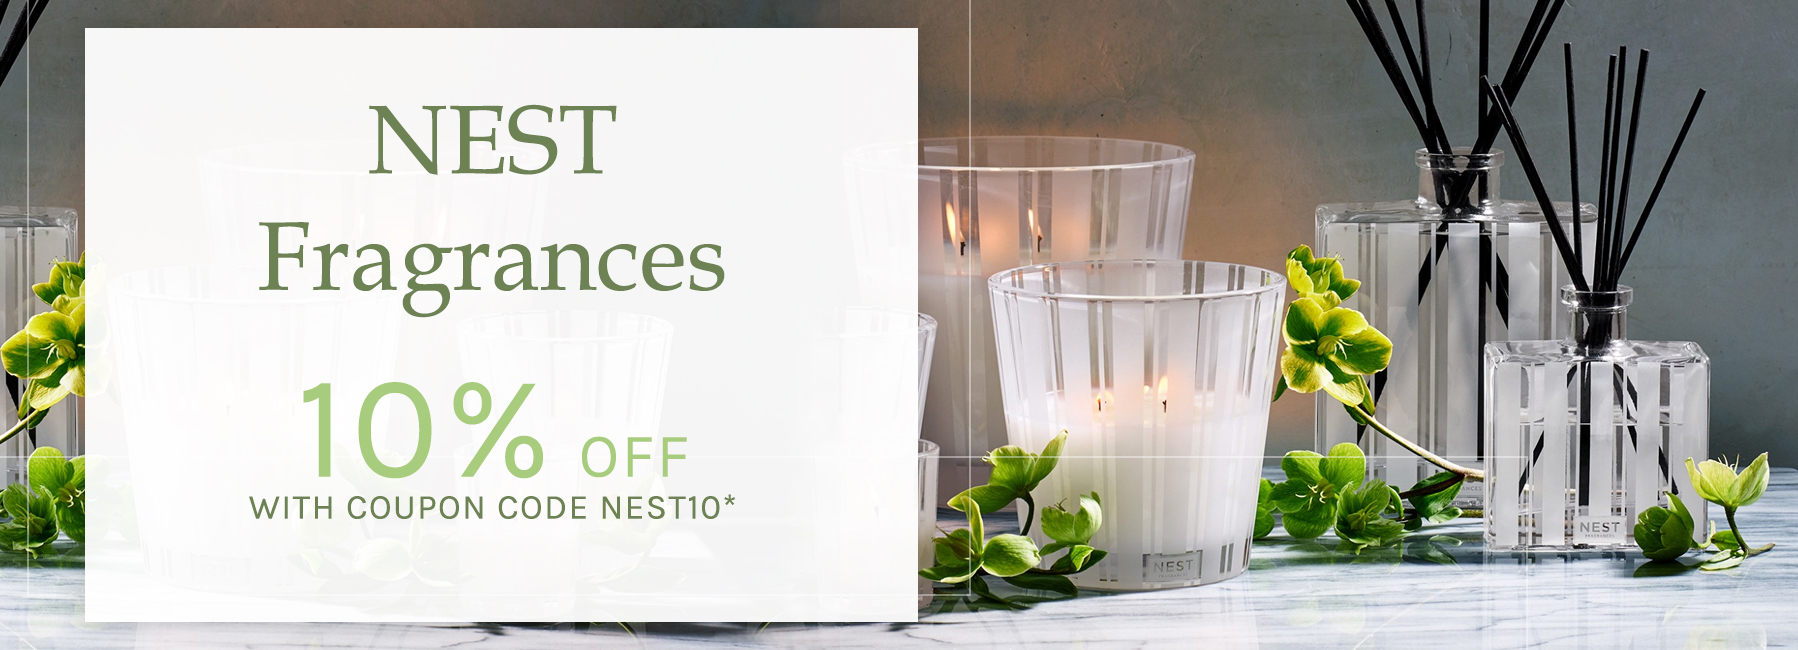 NEST Fragrances - 10 Percent OFF with Coupon Code NEST10